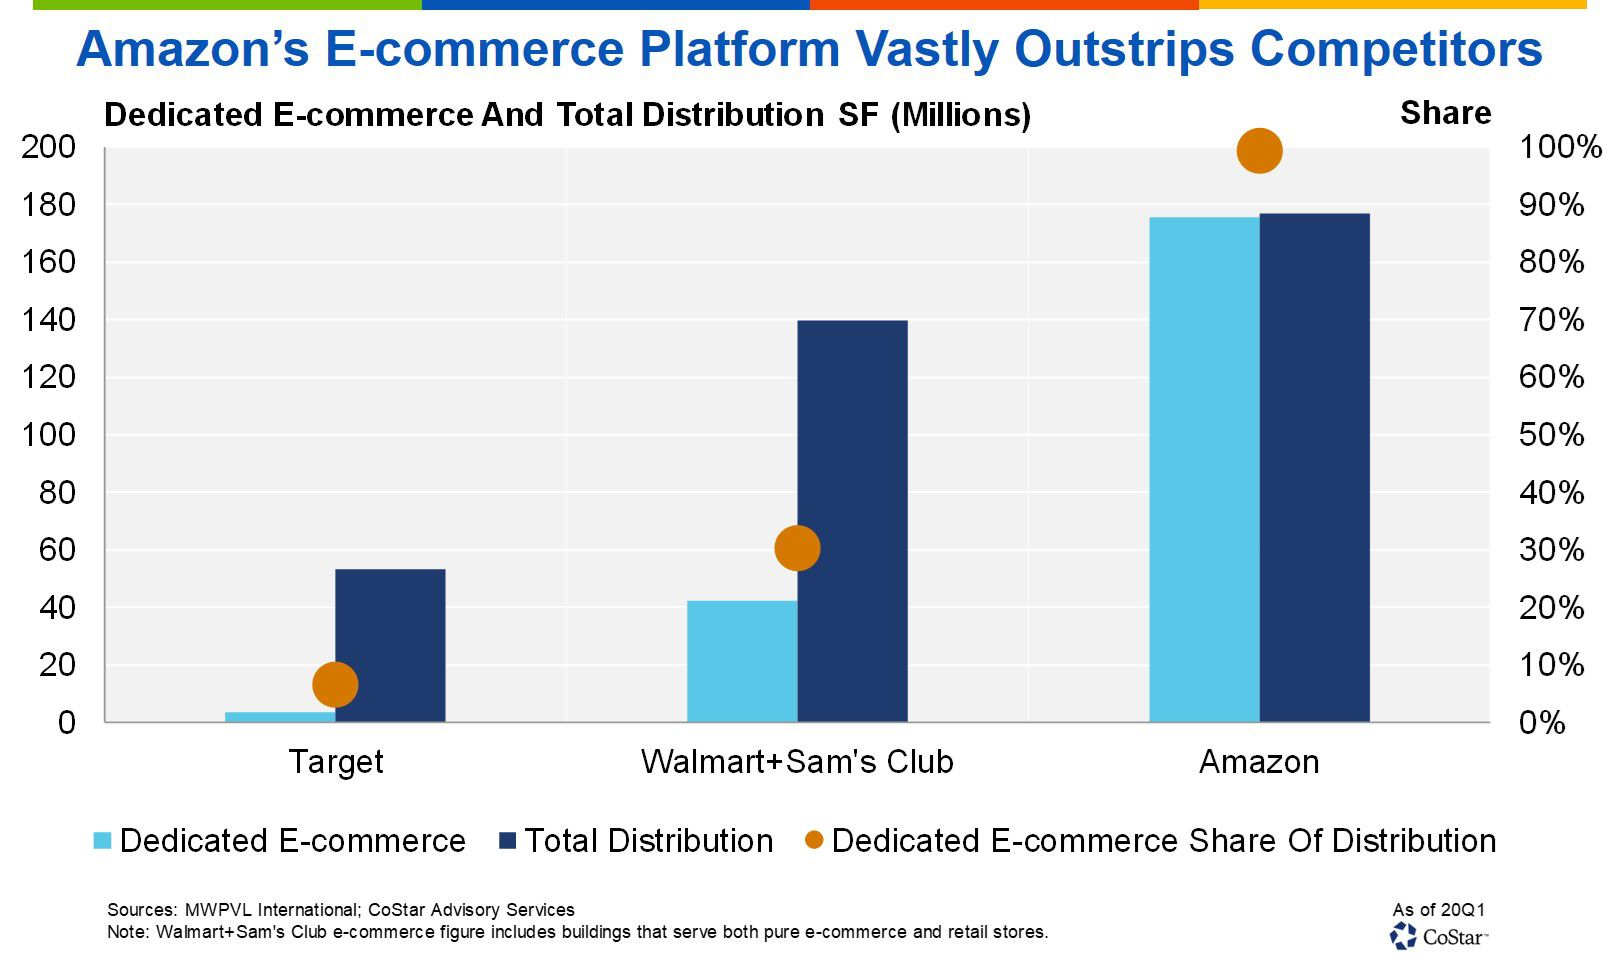 Amazon has more U.S. distribution space than any other retailer.